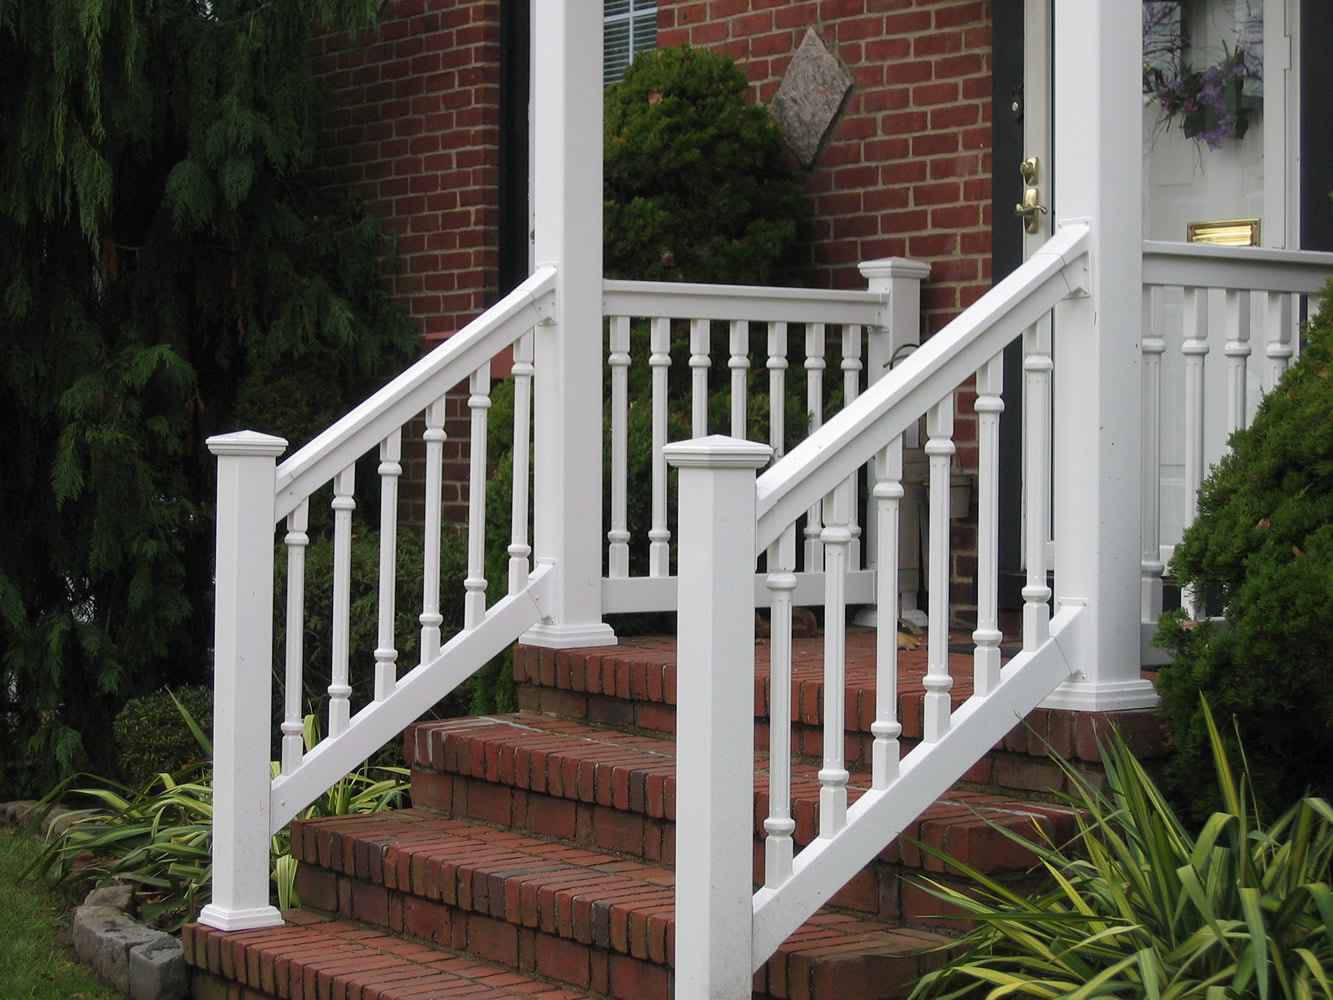 PVC Railing with T-rail Tops, Fluted Spindles and Porch Post